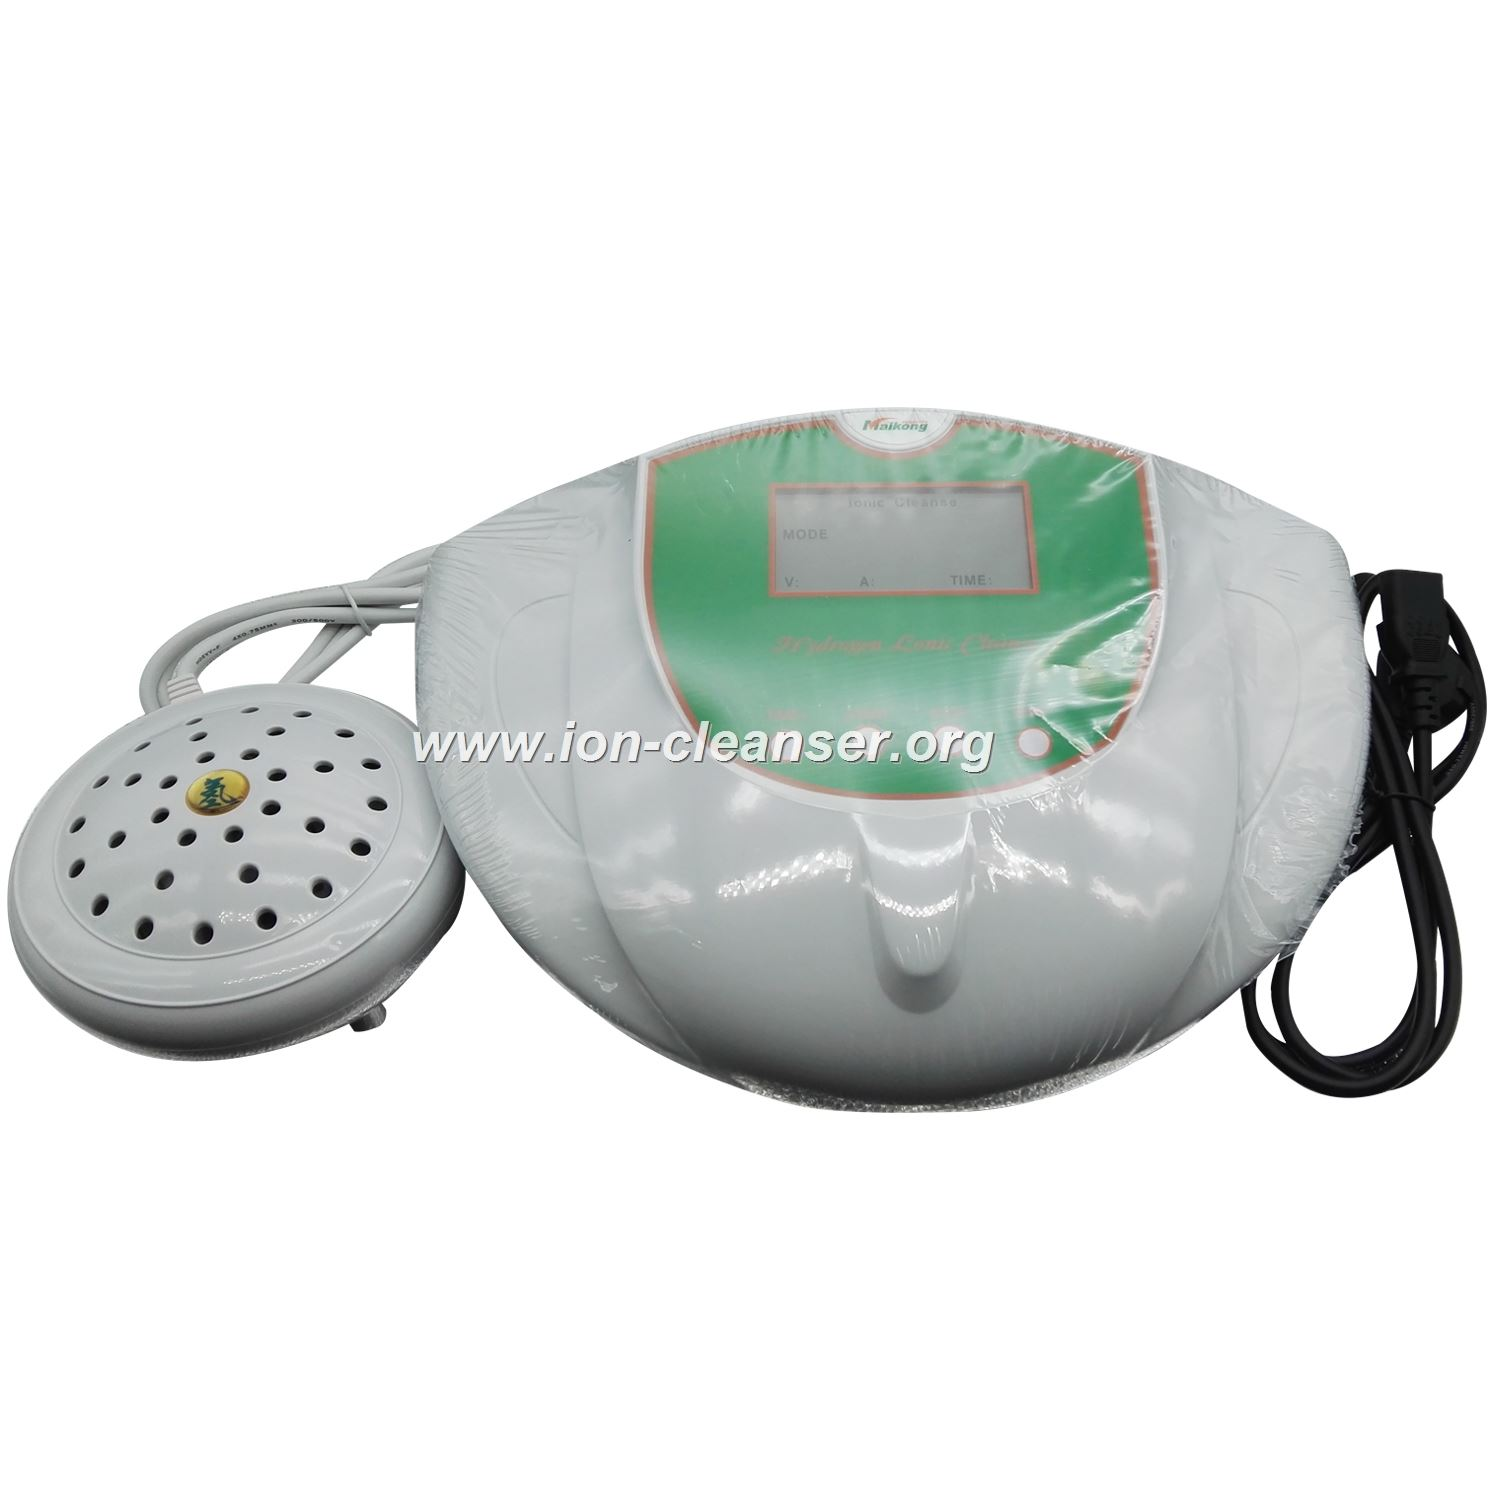 Cell spa detox machine